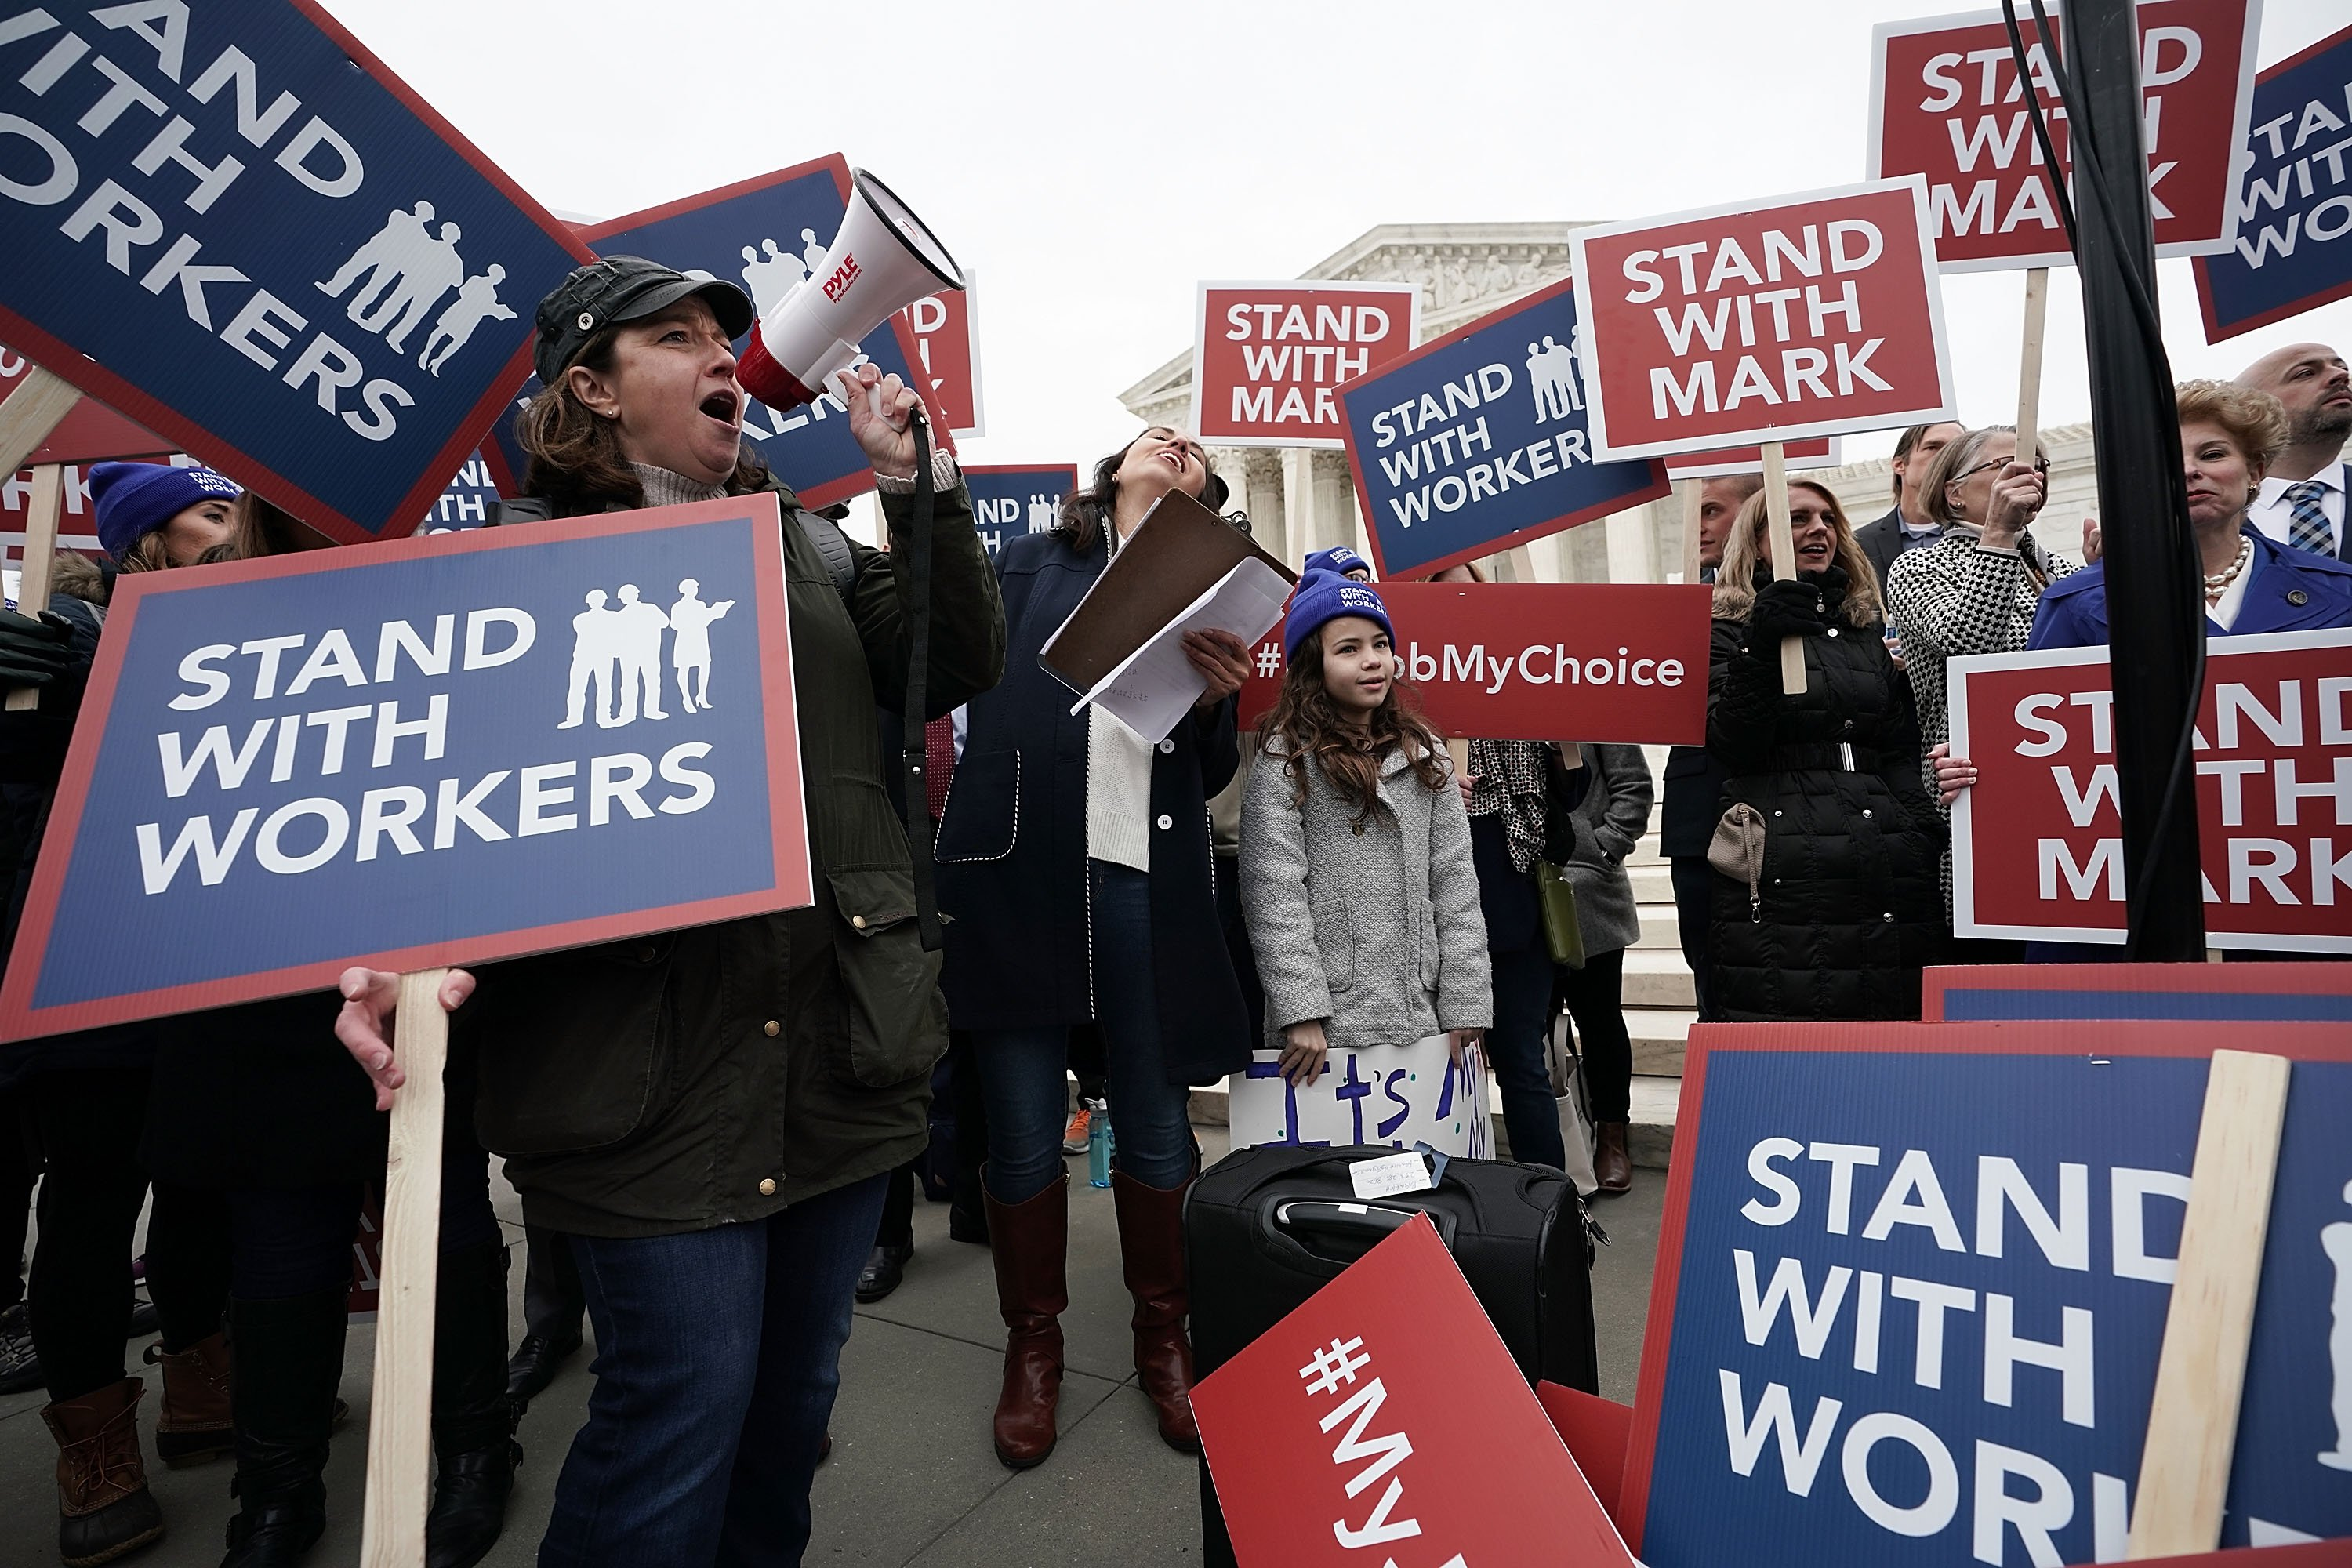 Activists rally in front of the Supreme Court before arguments in Janus v. AFSCME on February 26, 2018. (Alex Wong/Getty Images)